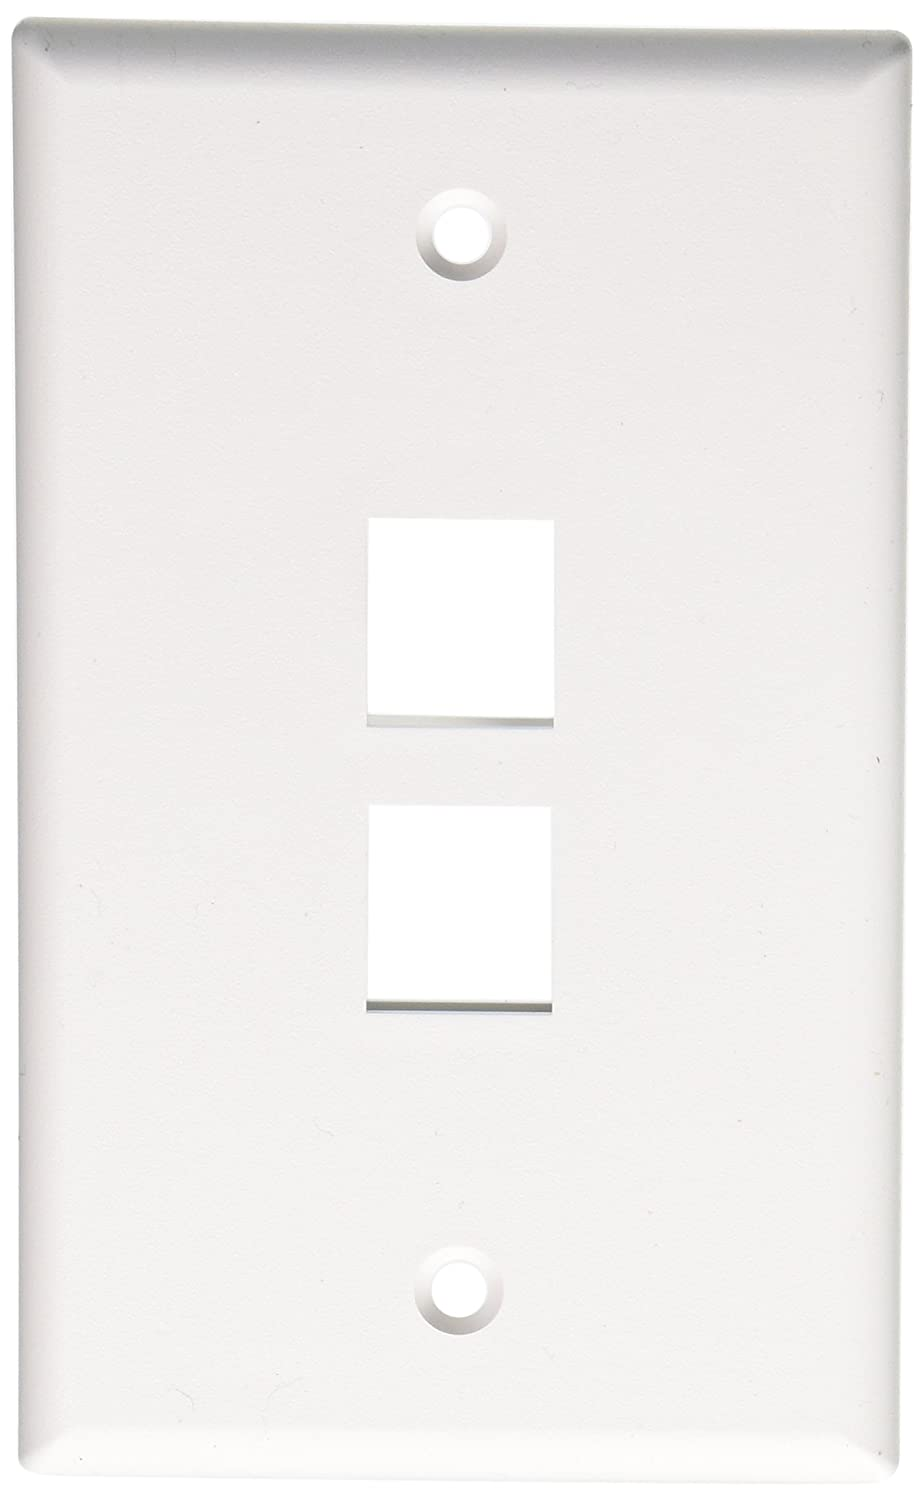 Leviton 41080 2wp Quickport Wallplate 2 Port White Electrical Ivory 1 To 5 Modular 4wire Phone Jack Converter Adapter C0261 Distribution Wall Plates